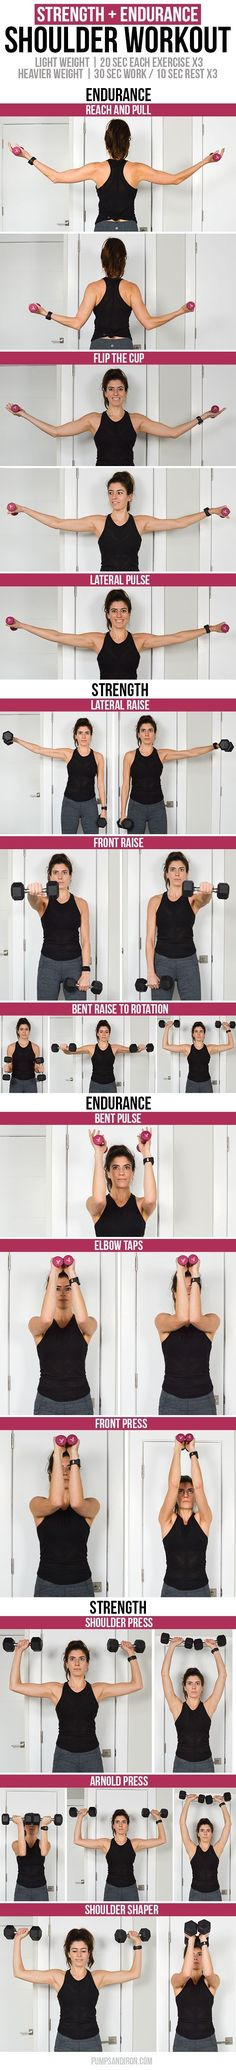 5 great home workout